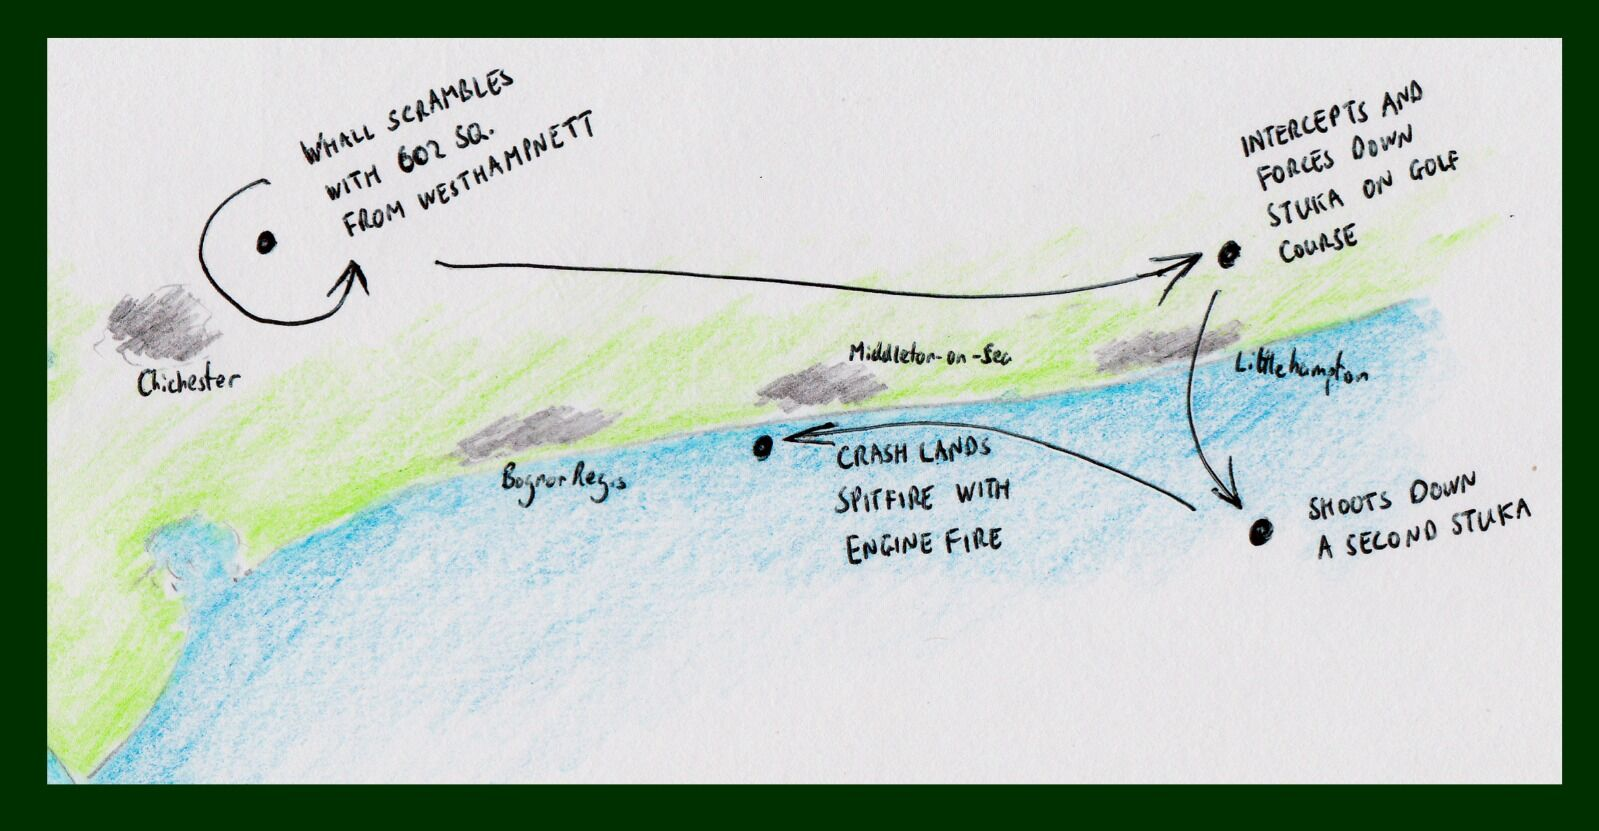 Sketch map showing Whall's flight